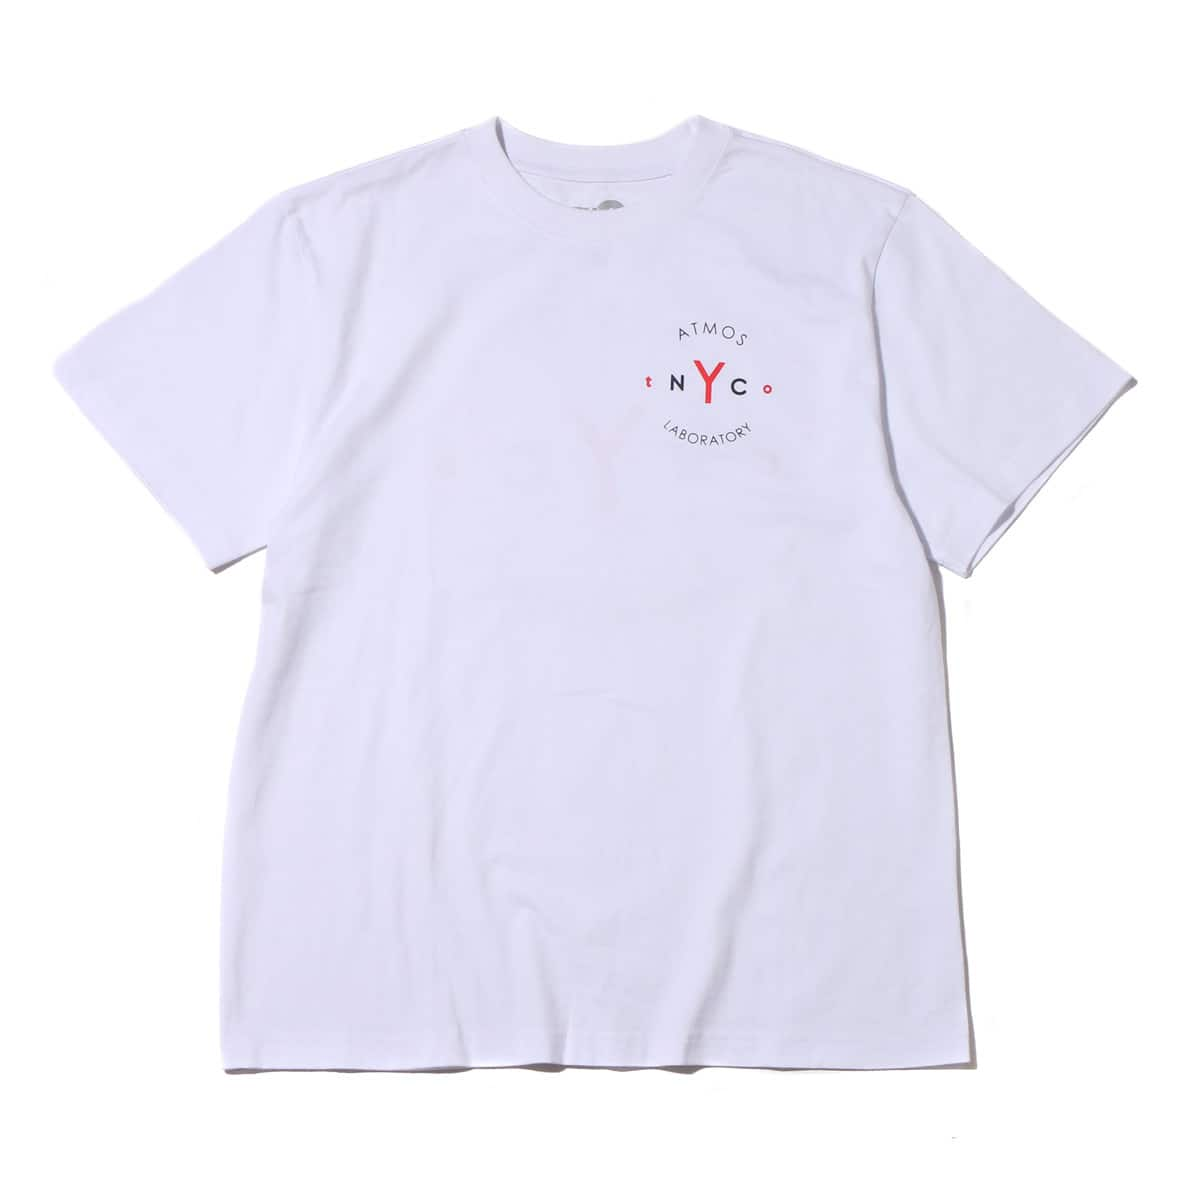 ATMOS LAB tNYCo TEE  WHITE_photo_large